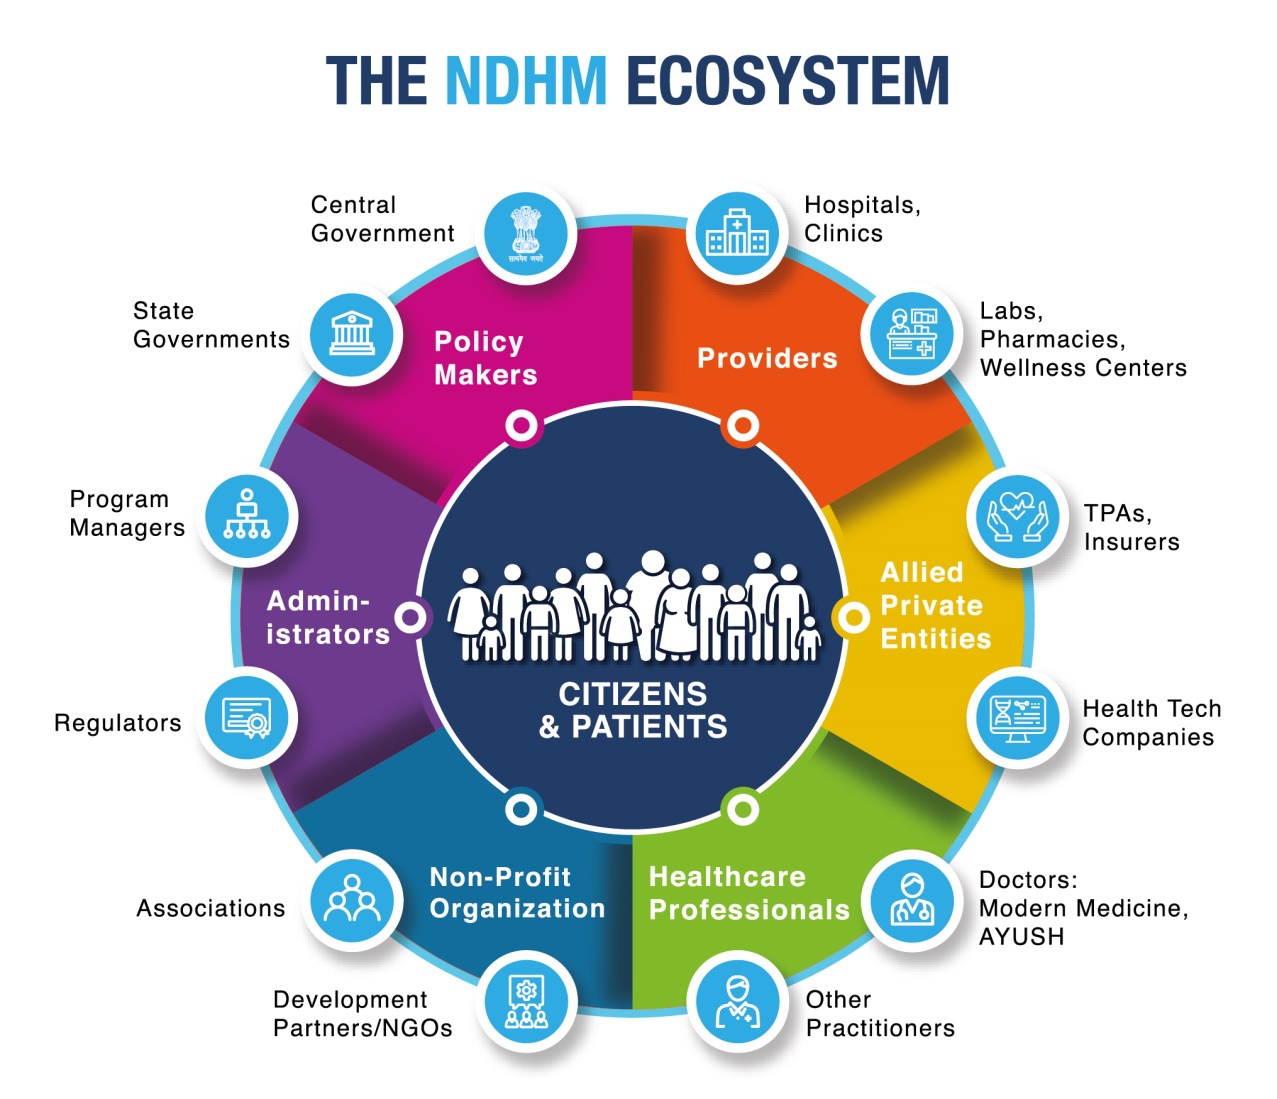 The NDHM ecosystem